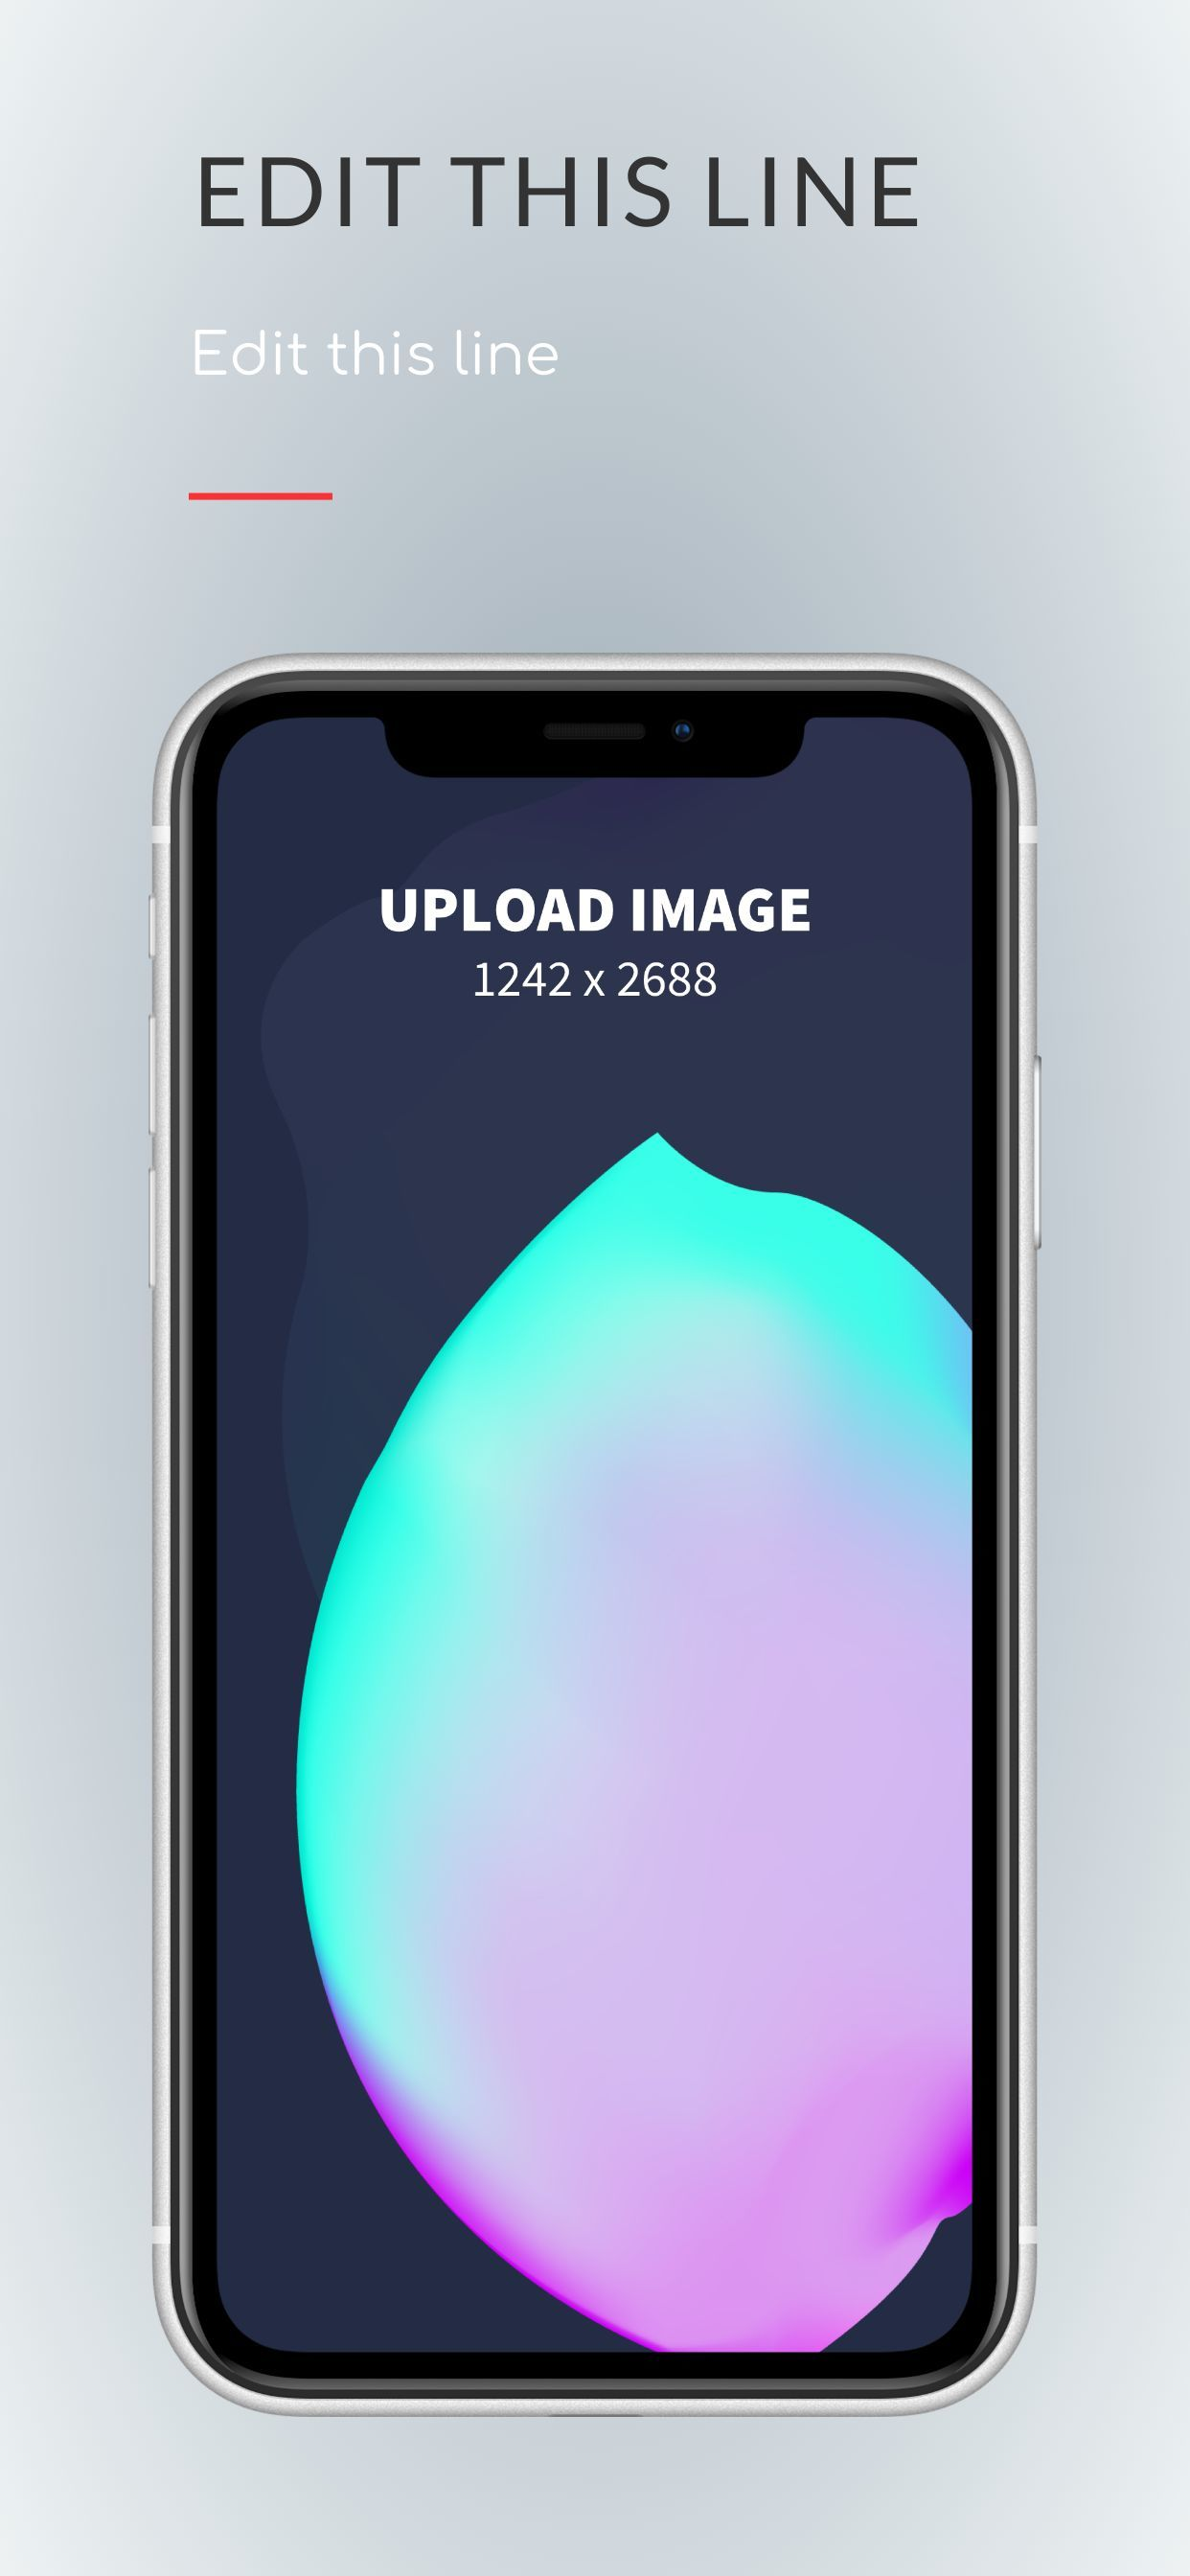 iPhone XS Max Screenshot 5 template. Quickly edit fonts, text, colors, and more for free.